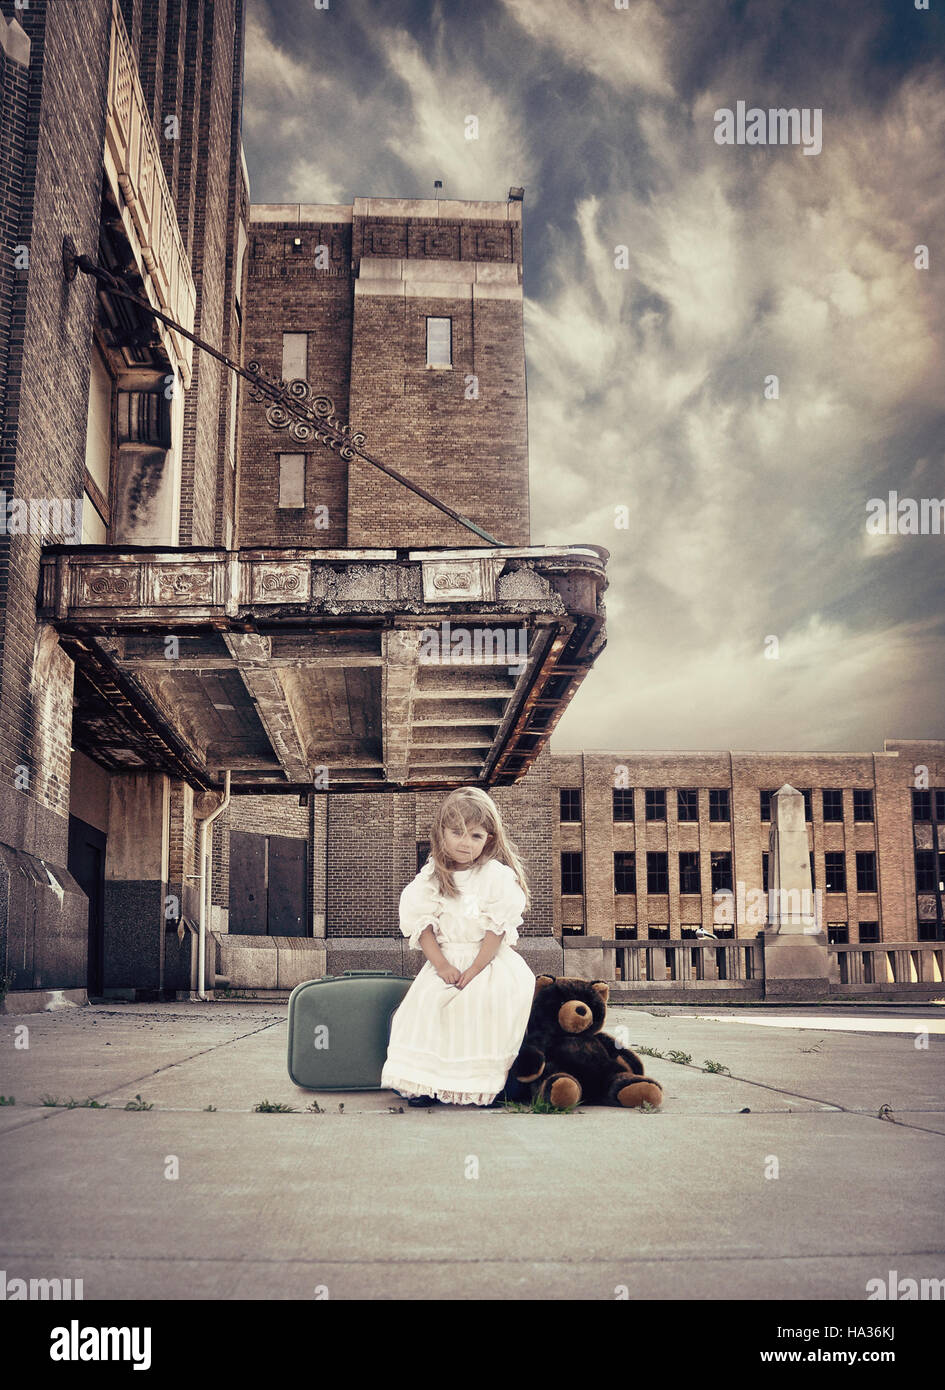 A little child is sitting on a travel suitcase by an old building with teddy bear next to her for a strength or - Stock Image